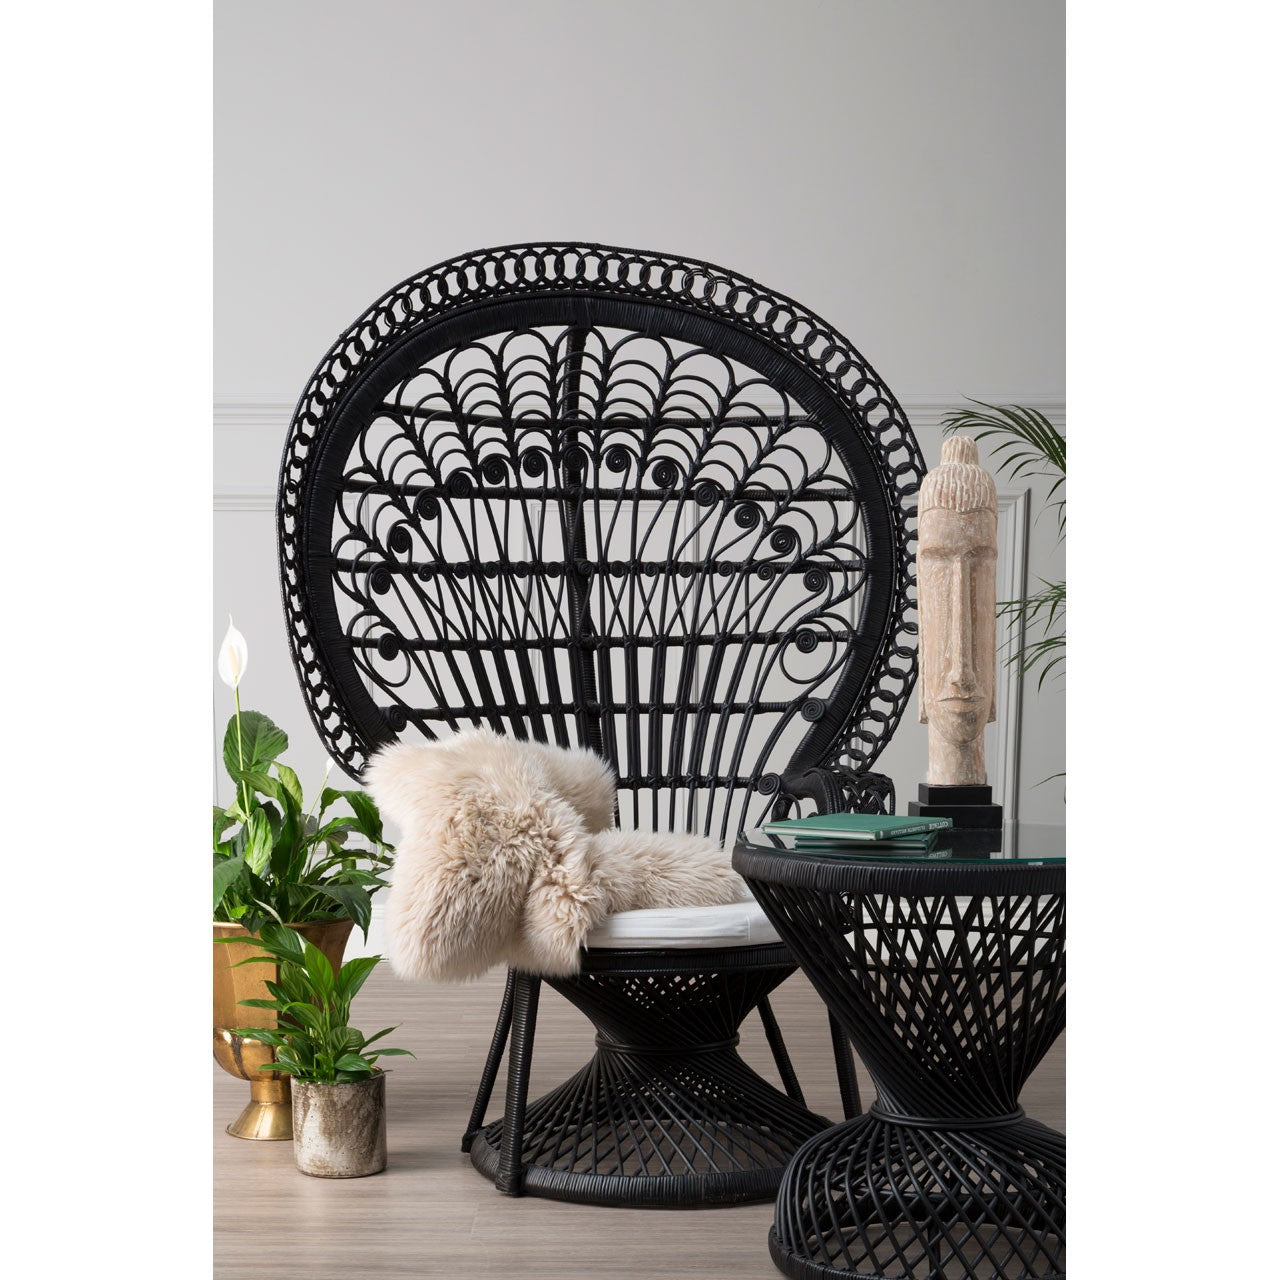 Woodstock Rattan Table Black